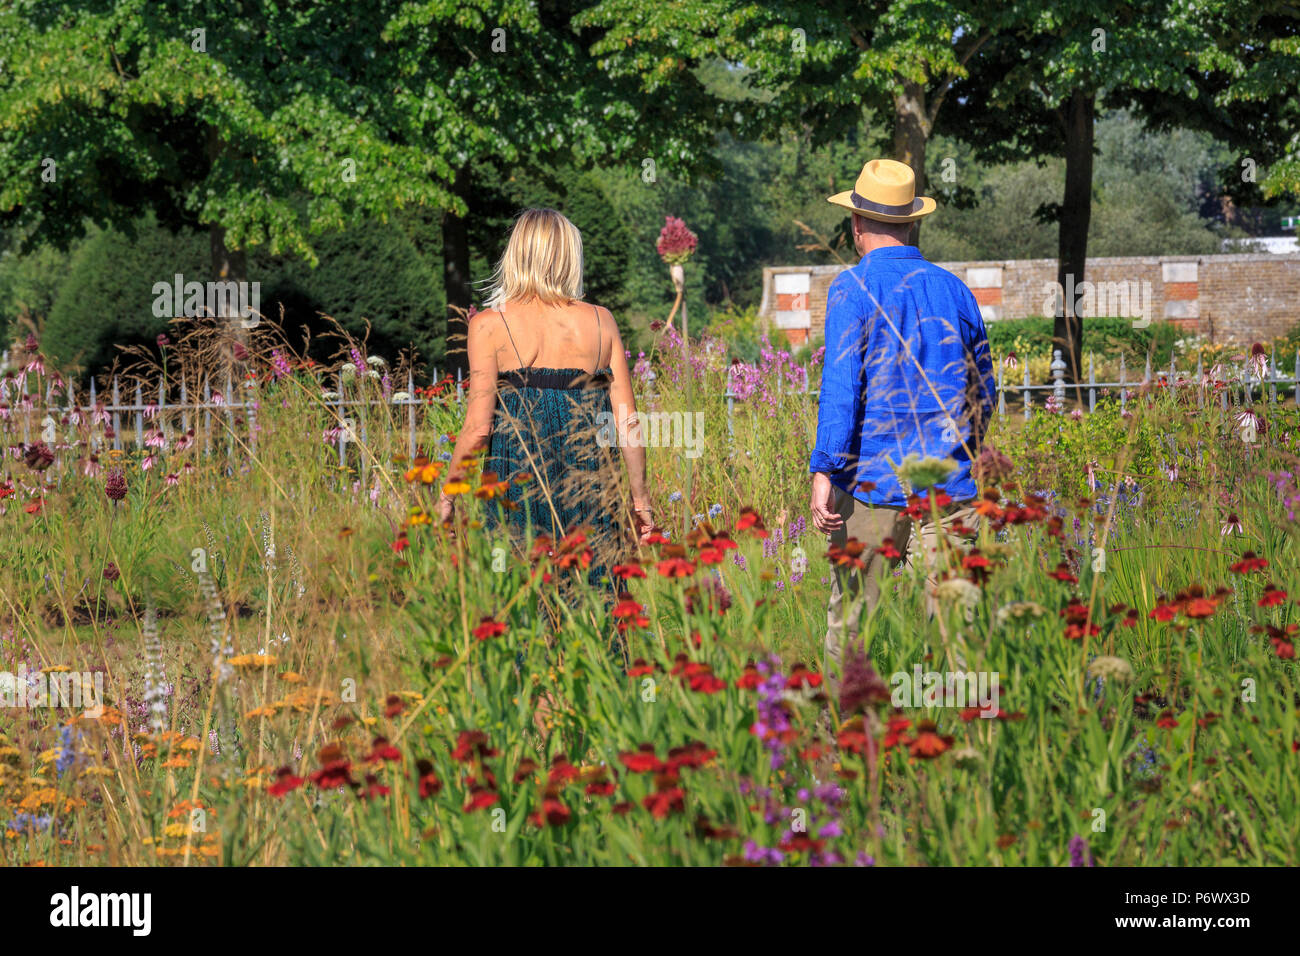 London, UK. 2nd-8th July 2018. RHS Hampton Court Flower Show. Radio DJ Jo Whiley and garden designer and TV celebrity Joe Swift walking in the perennial meadow-style  borders designed by Dutch landscape designer, plantsman and author Piet Oudolf.   - Designer:  Piet Oudolf Stock Photo